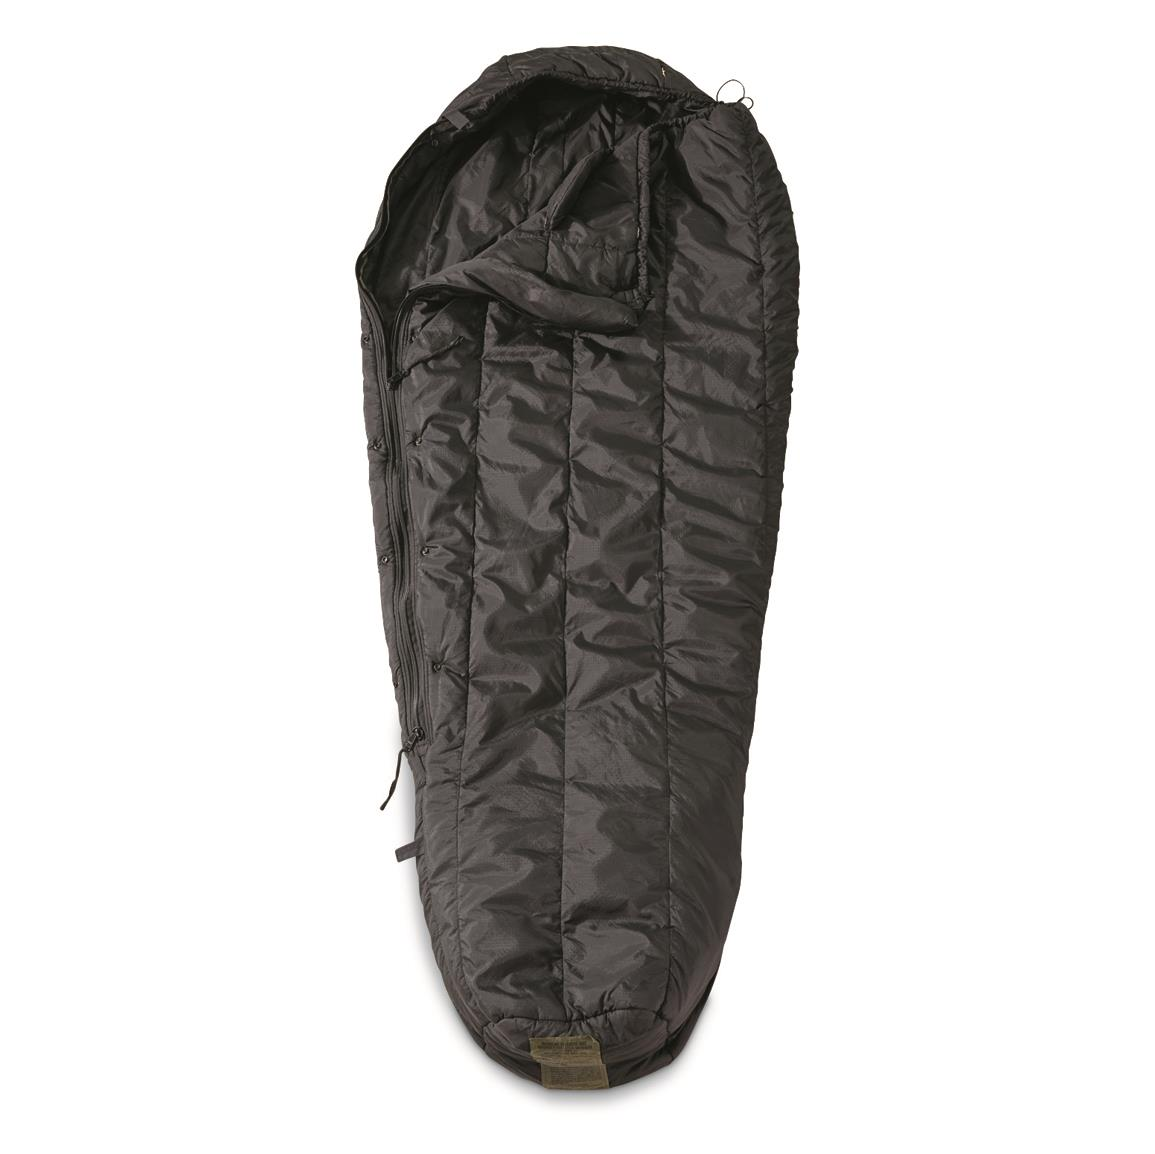 U.S. Military Surplus Black Intermediate Cold Weather Sleeping Bag, Used